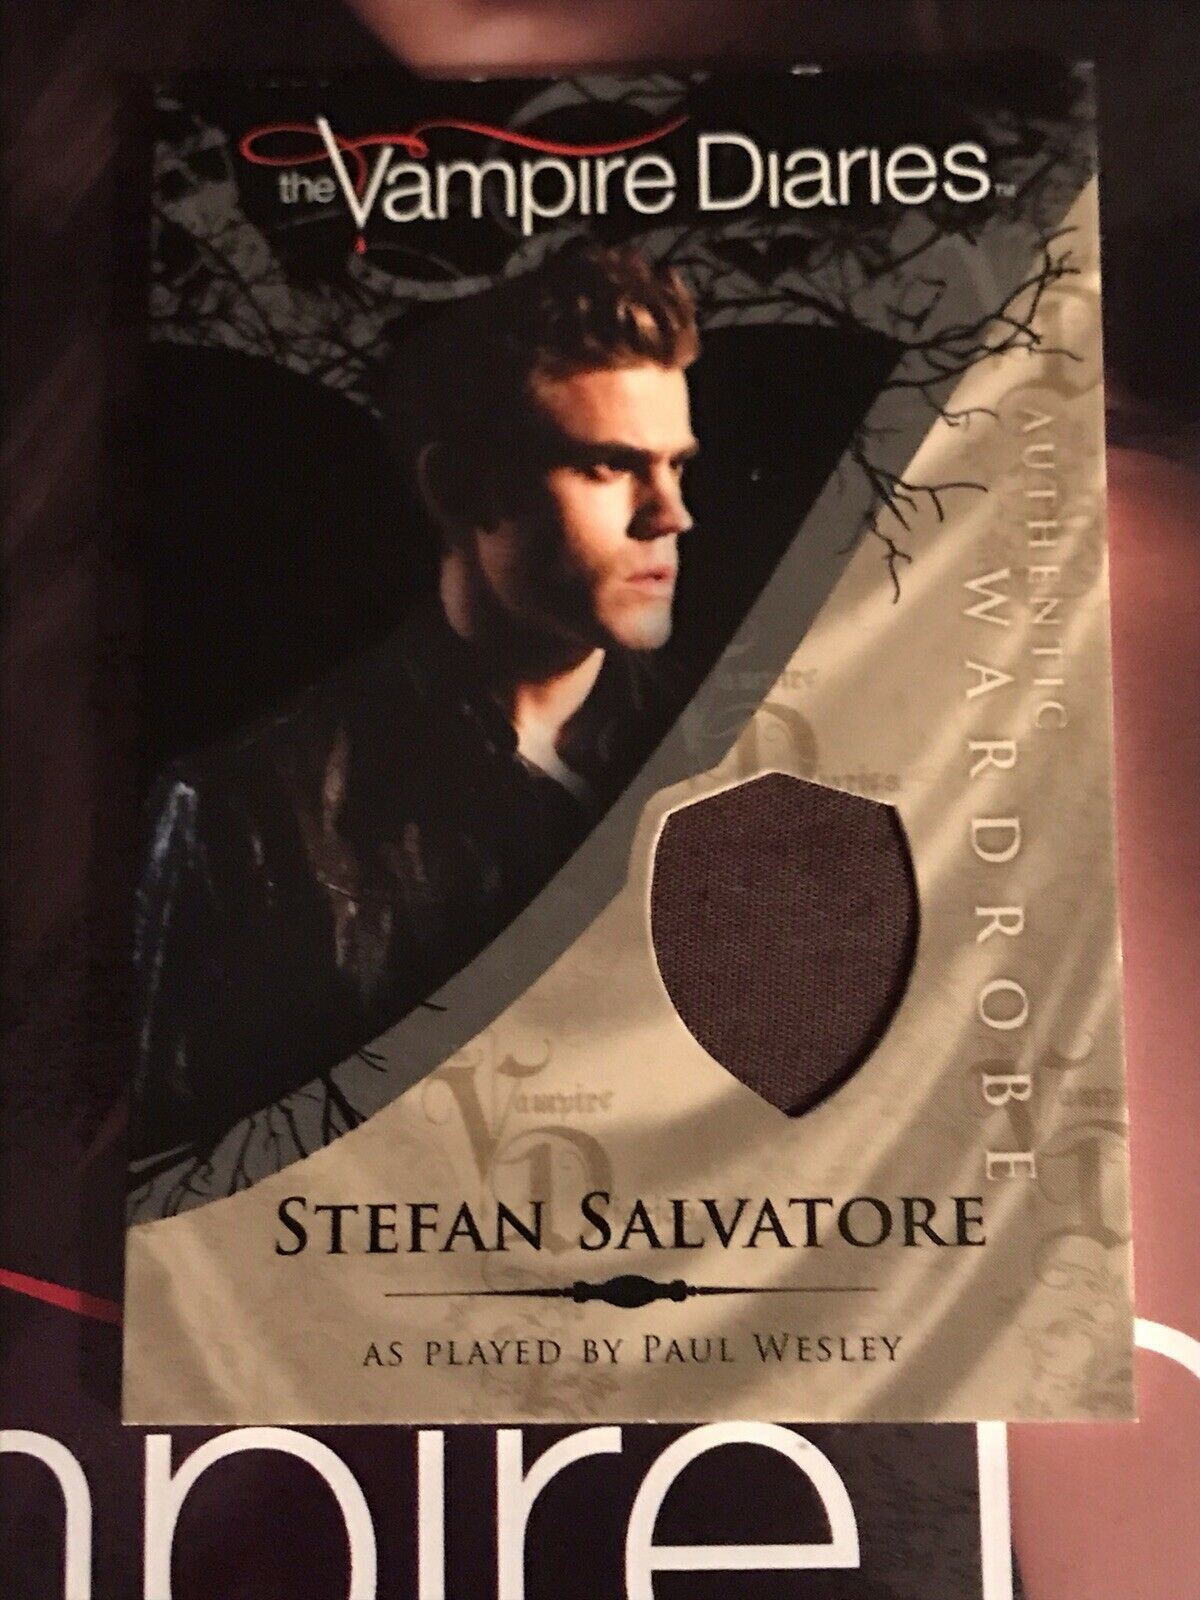 Primary image for Vampire Diaries Season 1 Wardrobe Card M1 Paul Wesley as Stefan Salvatore